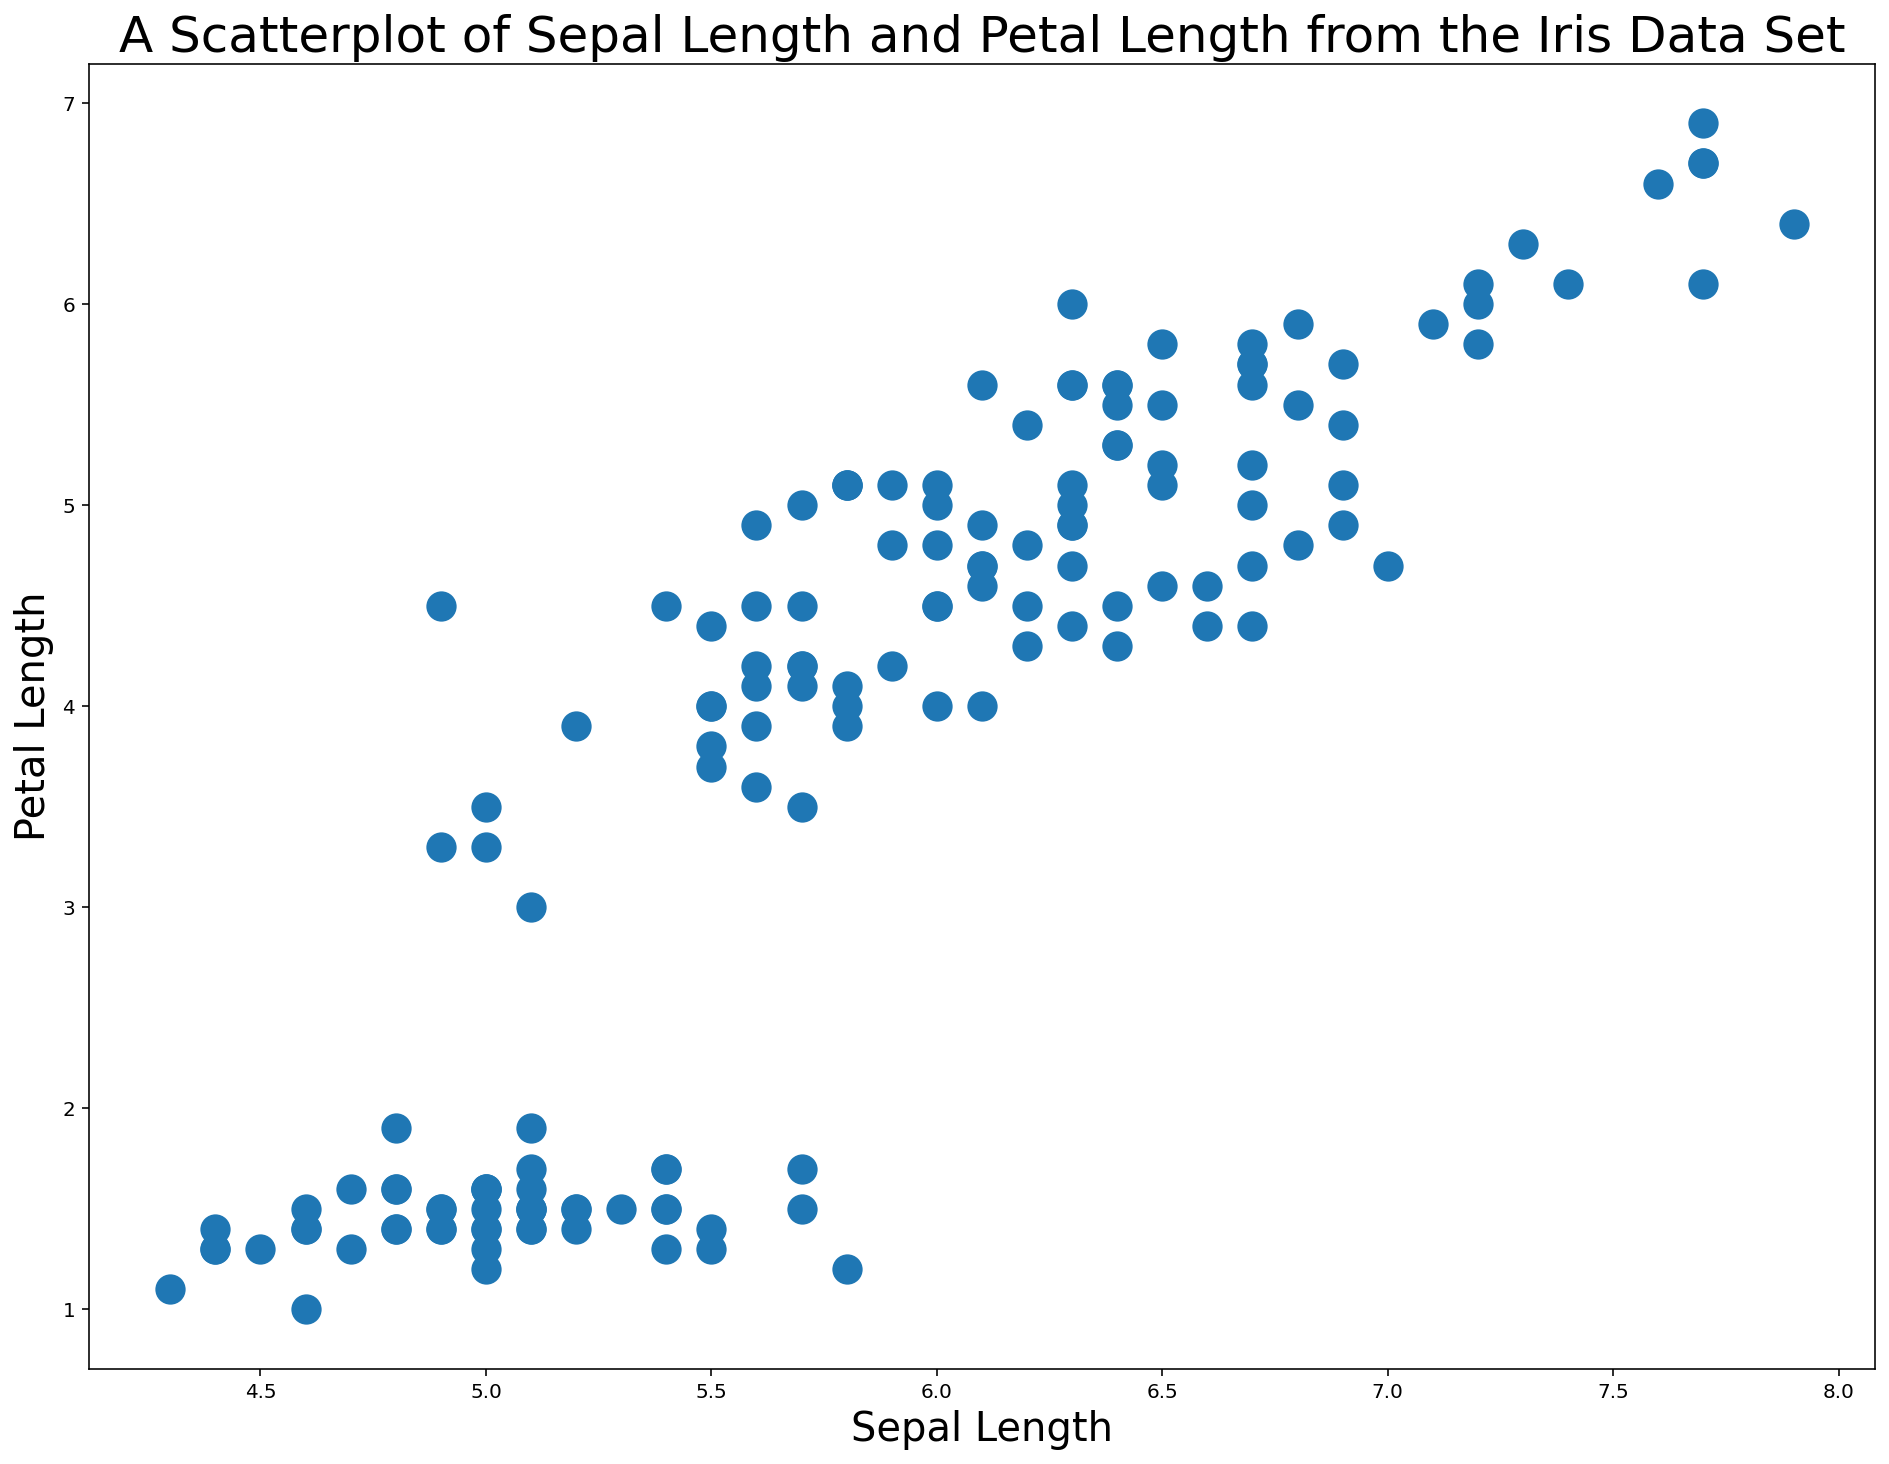 Your Second Scatterplot